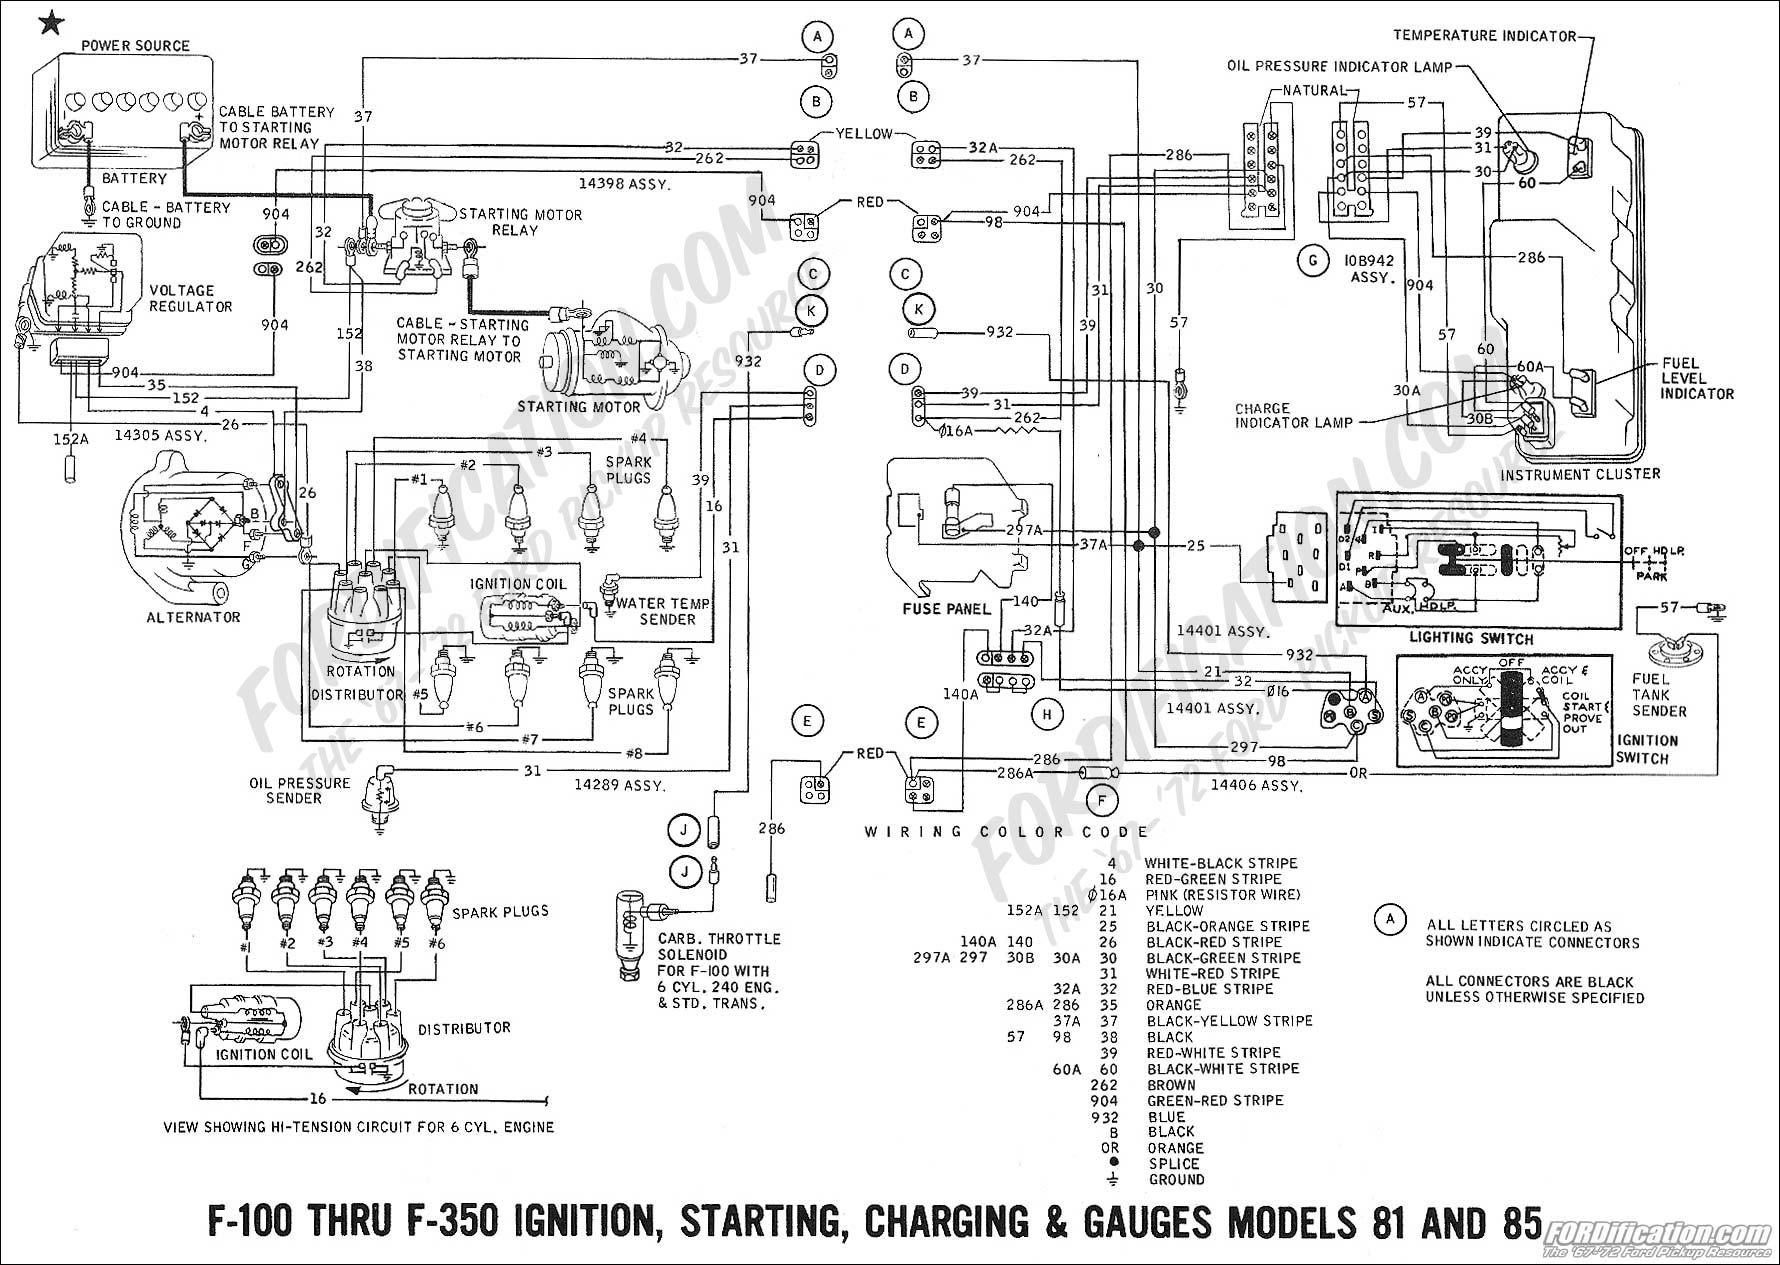 2004 Ford E350 Fuse Box Diagram 31 Wiring Images 2006 Econoline Efcaviation Com 1969charging2qualityd806stripdall